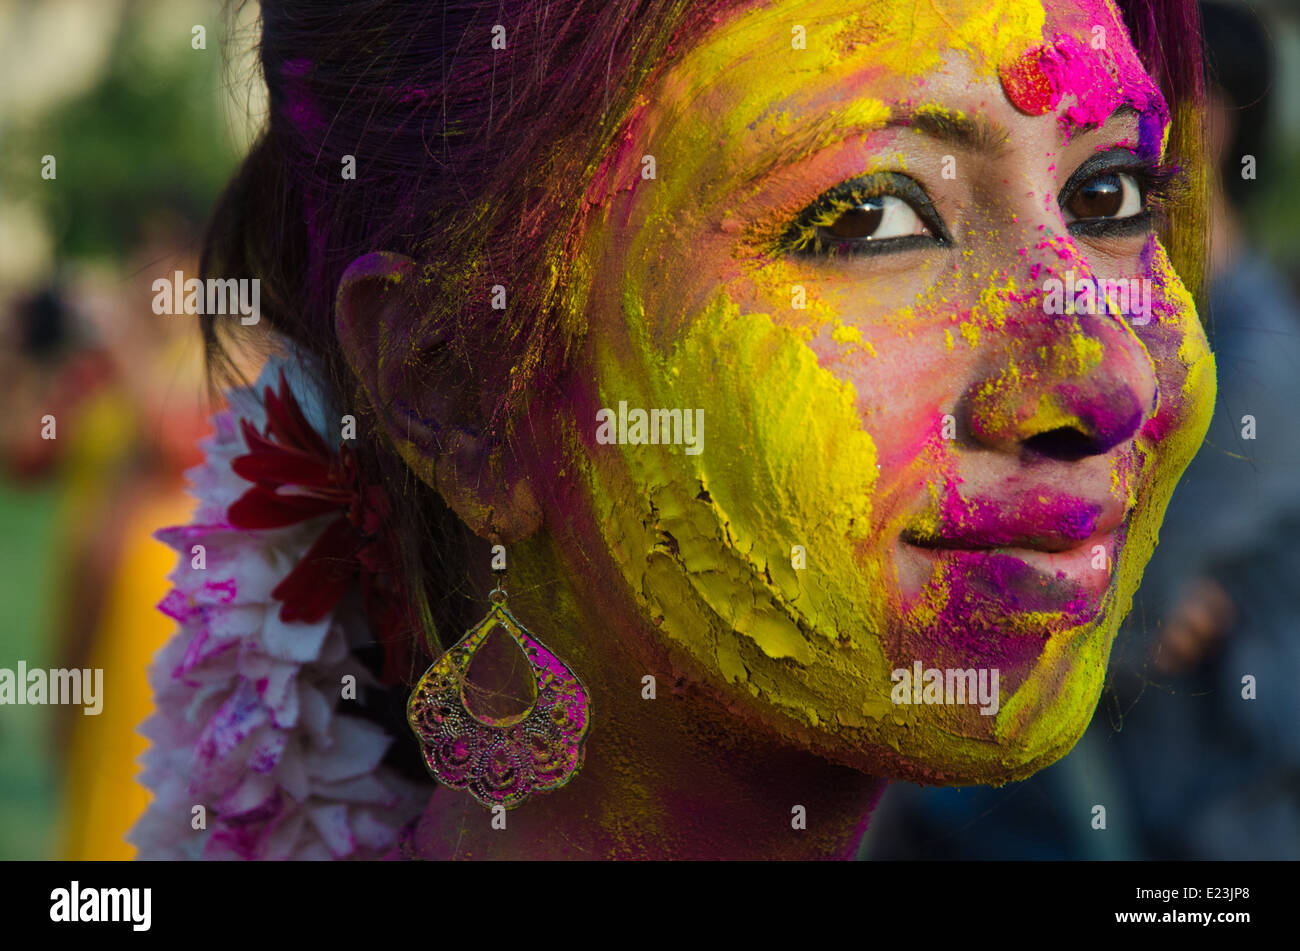 Portrait of an Indian woman with colors in her face at Holi festival. - Stock Image